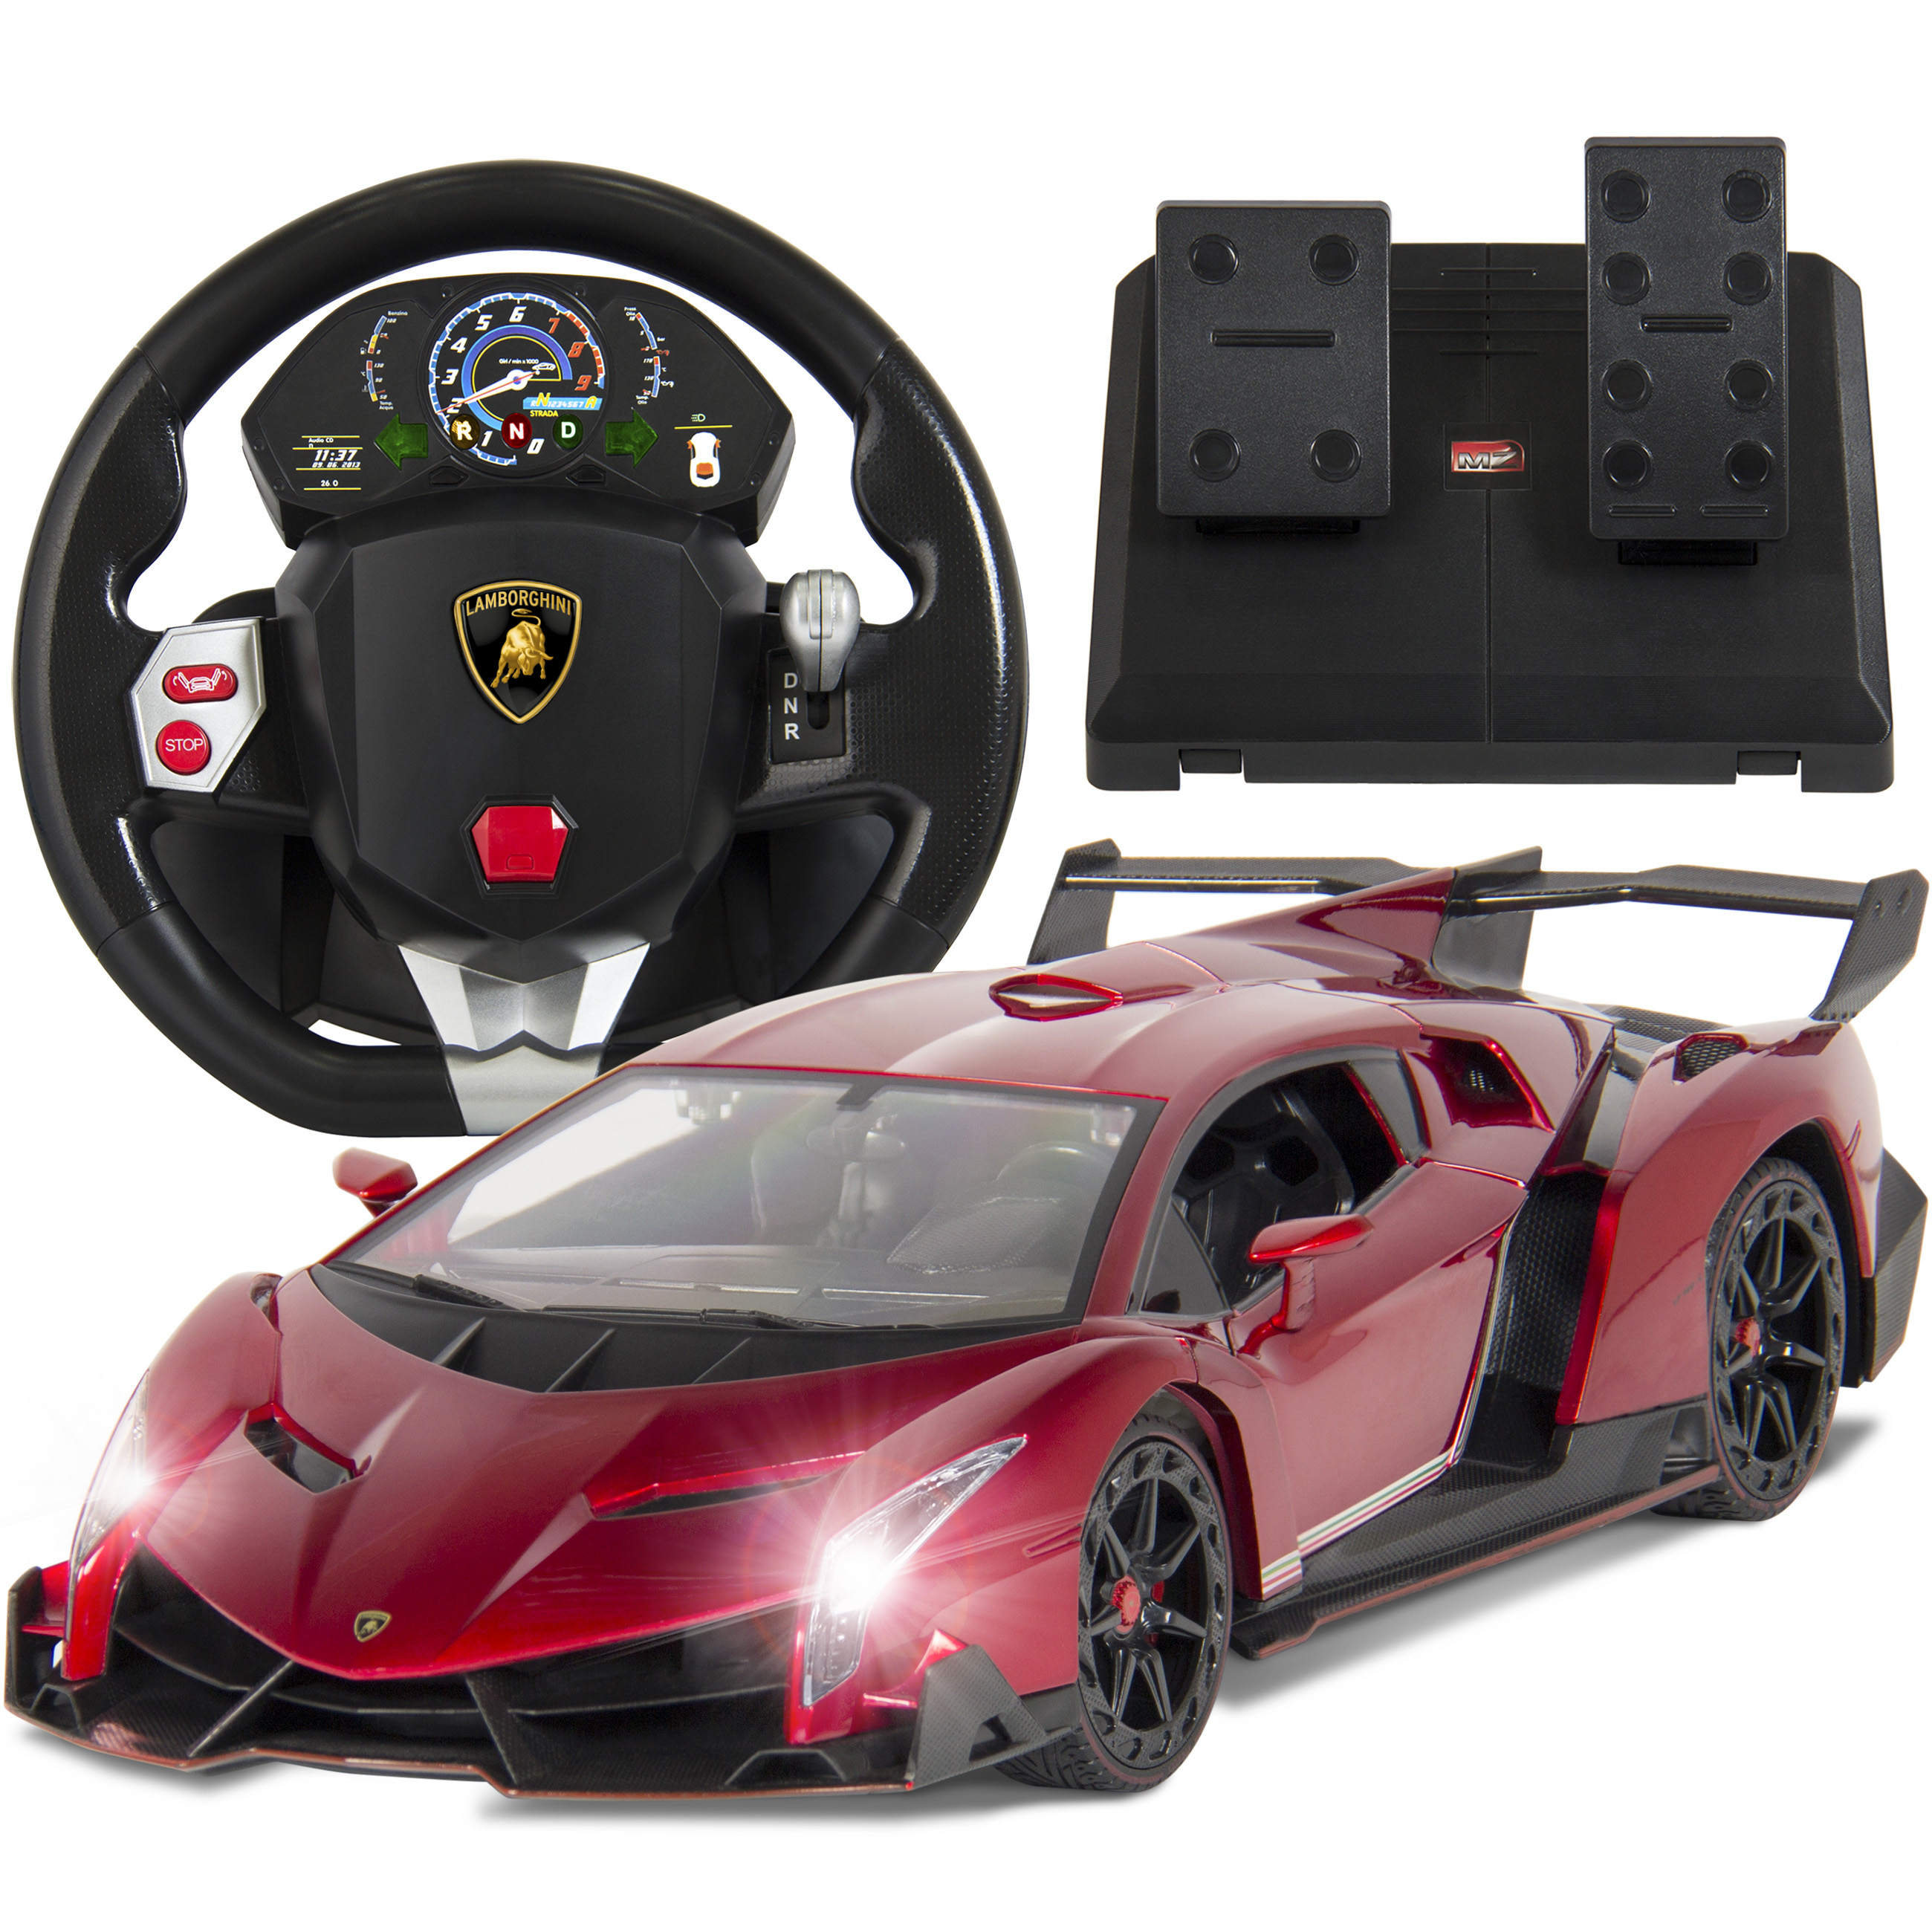 Best Choice Products 1/14 Scale RC Lamborghini Veneno Realistic Driving Gravity Sensor Remote Control Car - Red